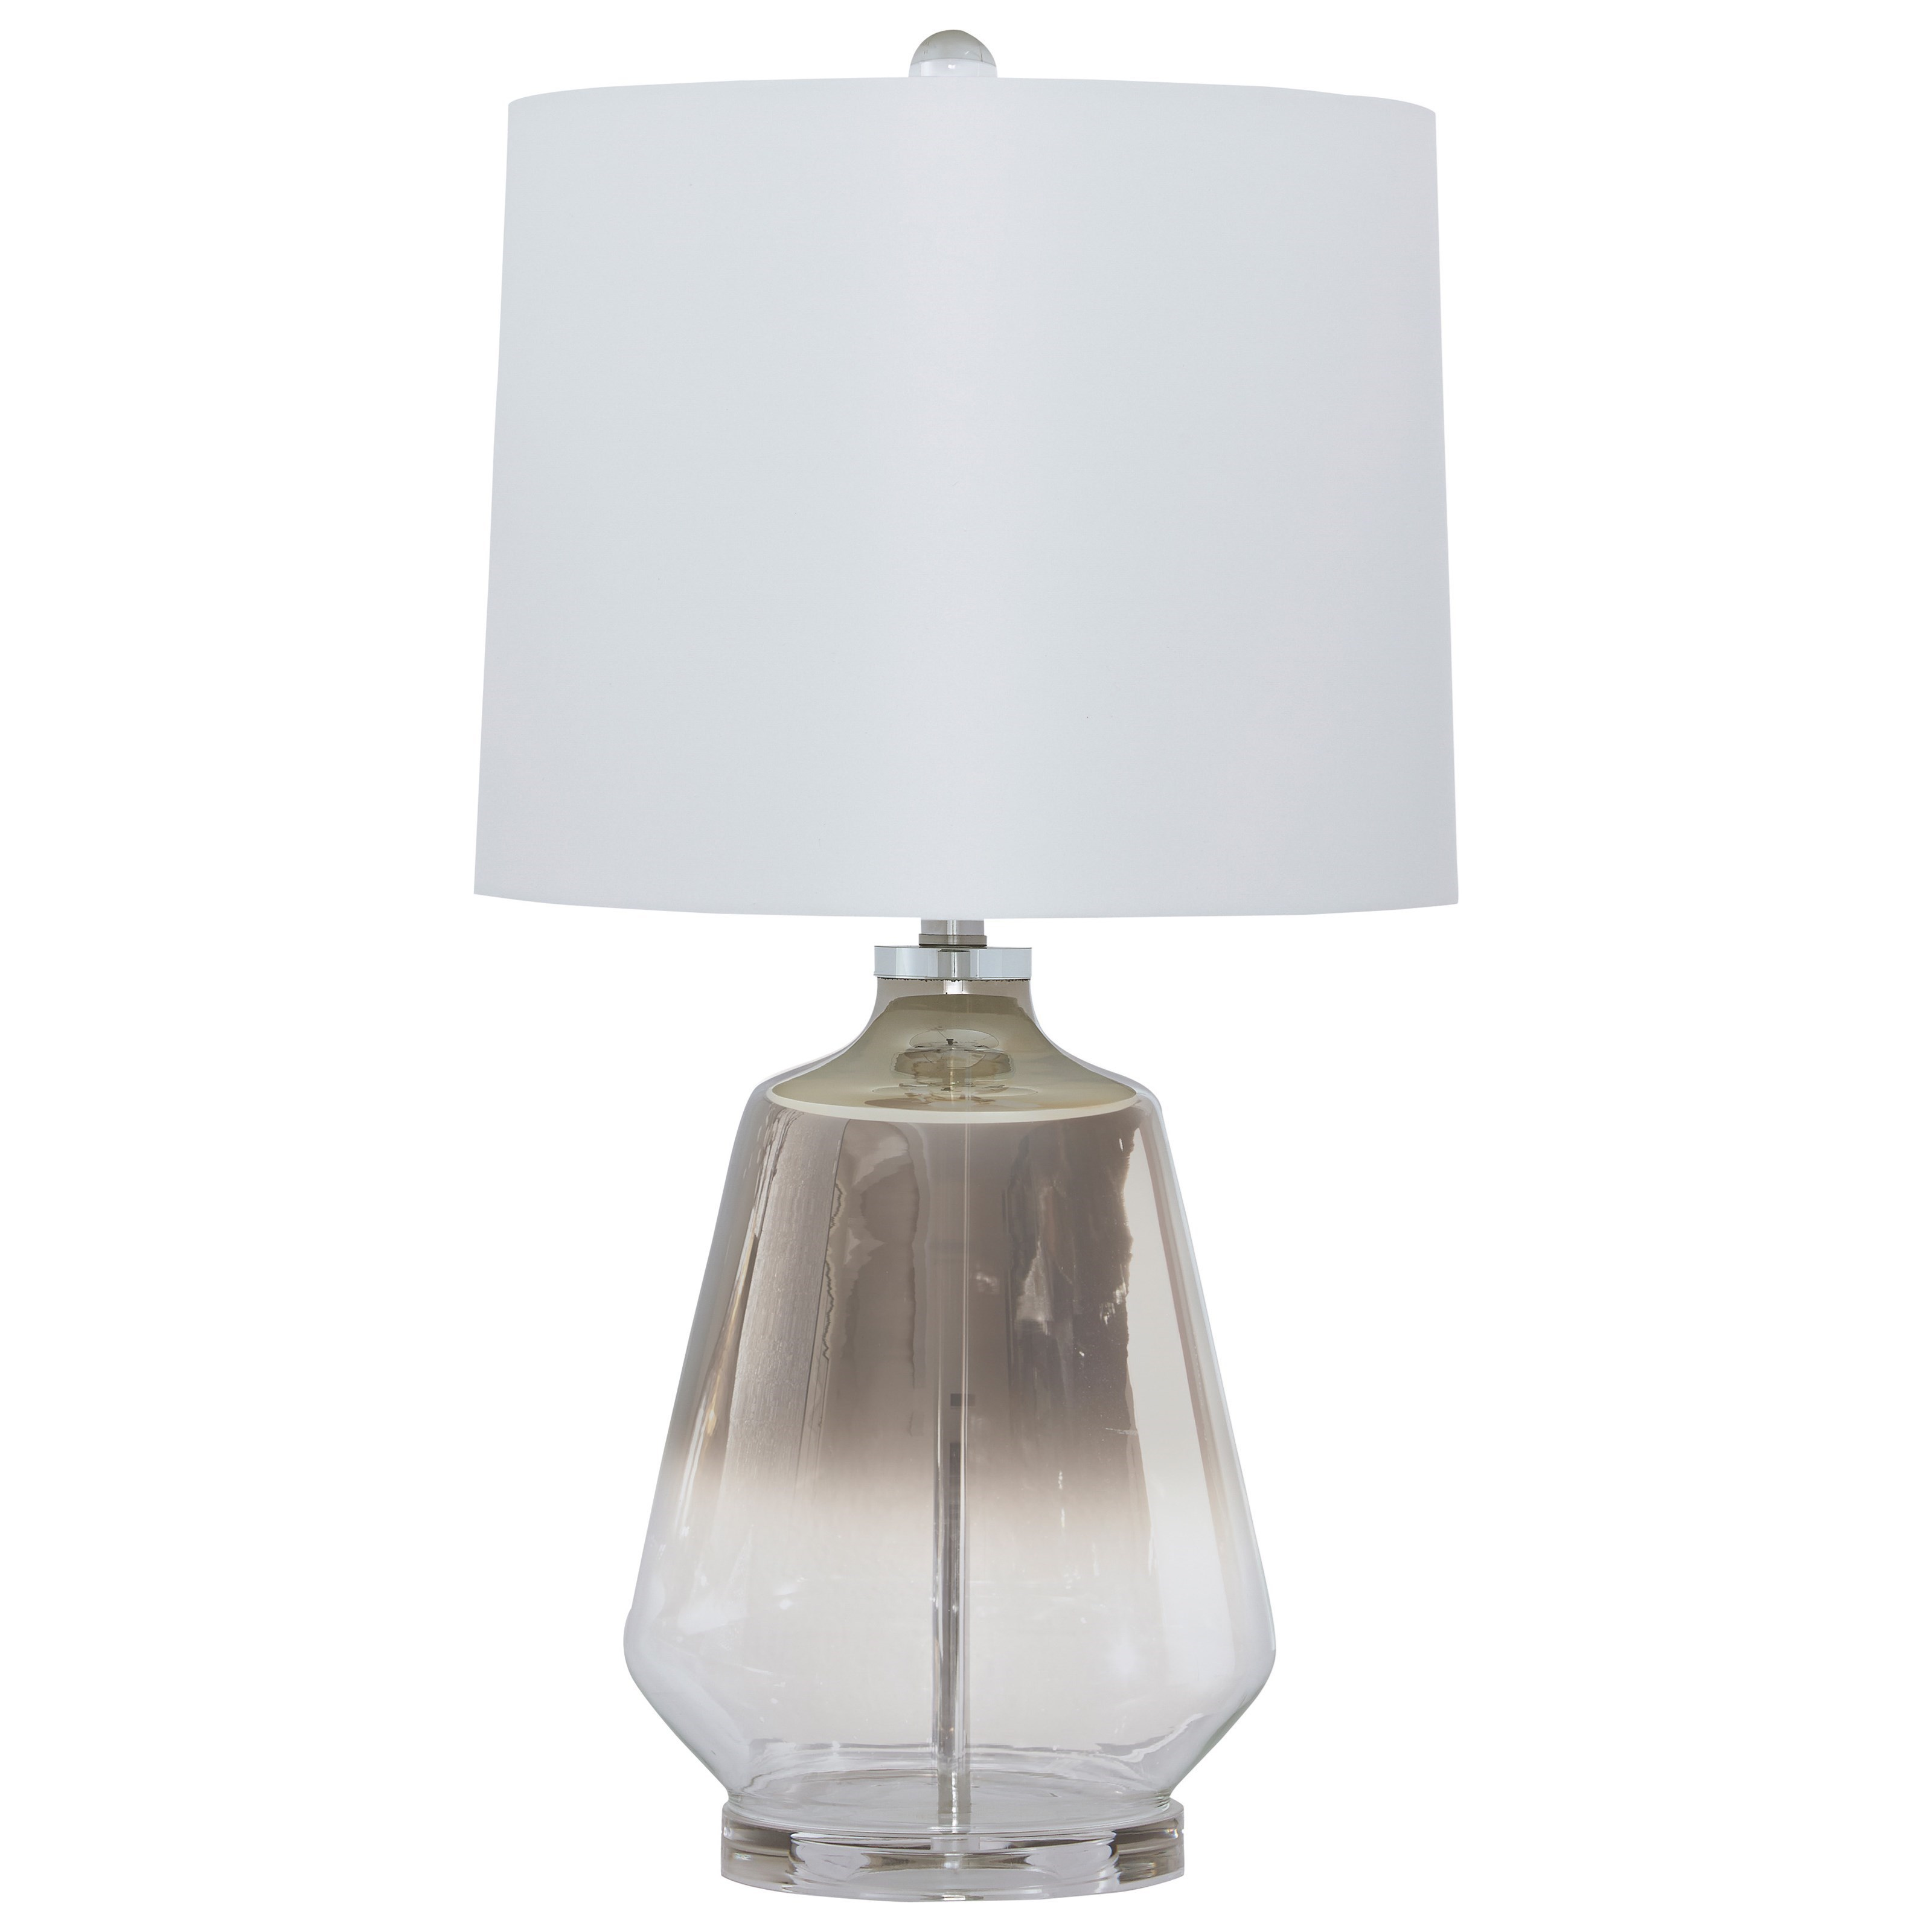 Signature Design By Ashley Lamps Contemporary L430414